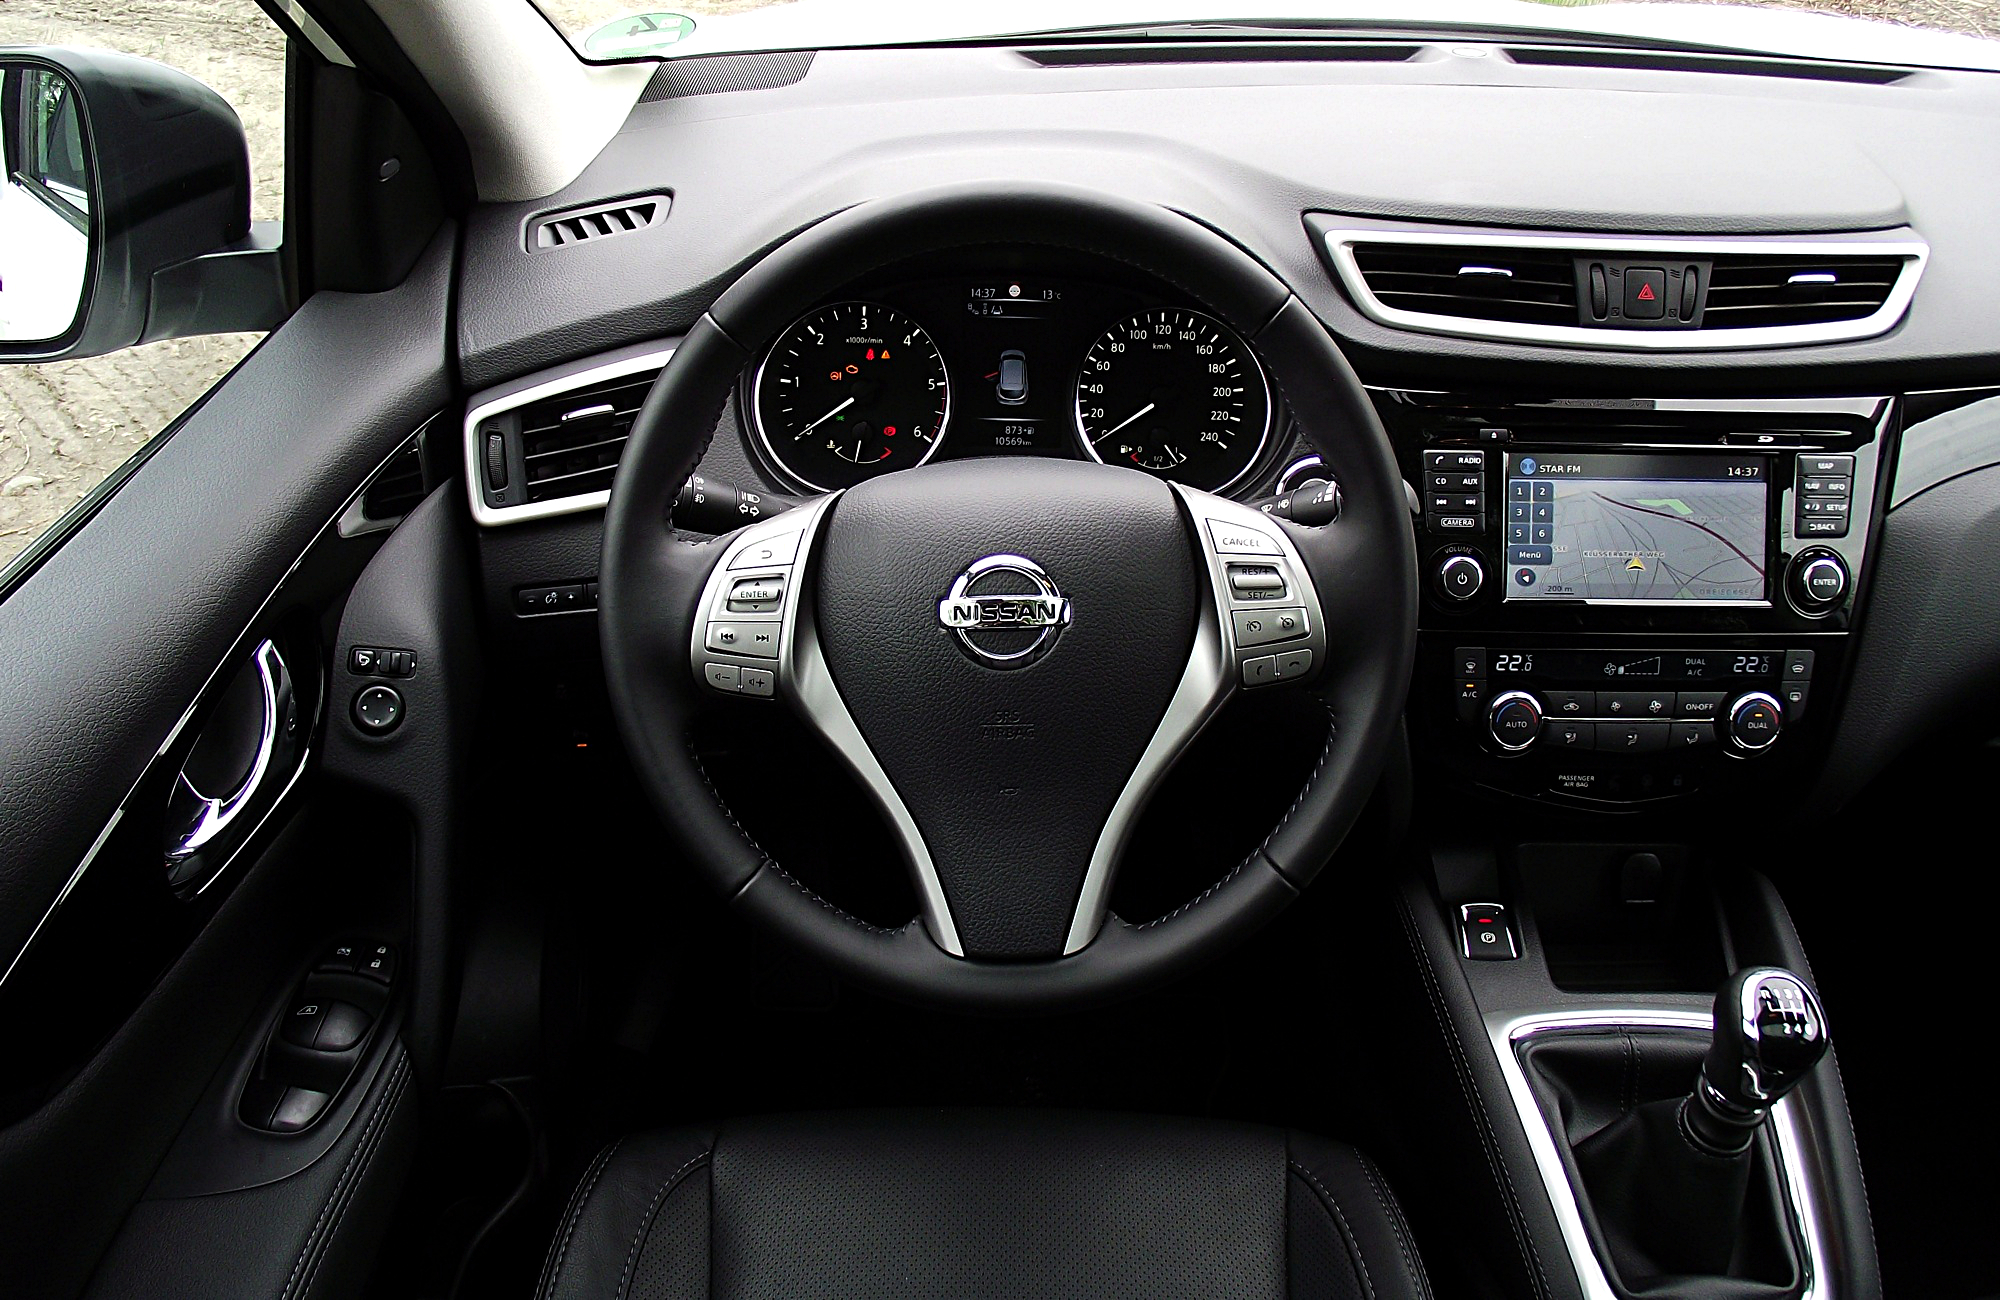 file nissan qashqai 1 6 dci all mode 4x4i tekna interieur cockpit innenraum jpg wikimedia commons. Black Bedroom Furniture Sets. Home Design Ideas